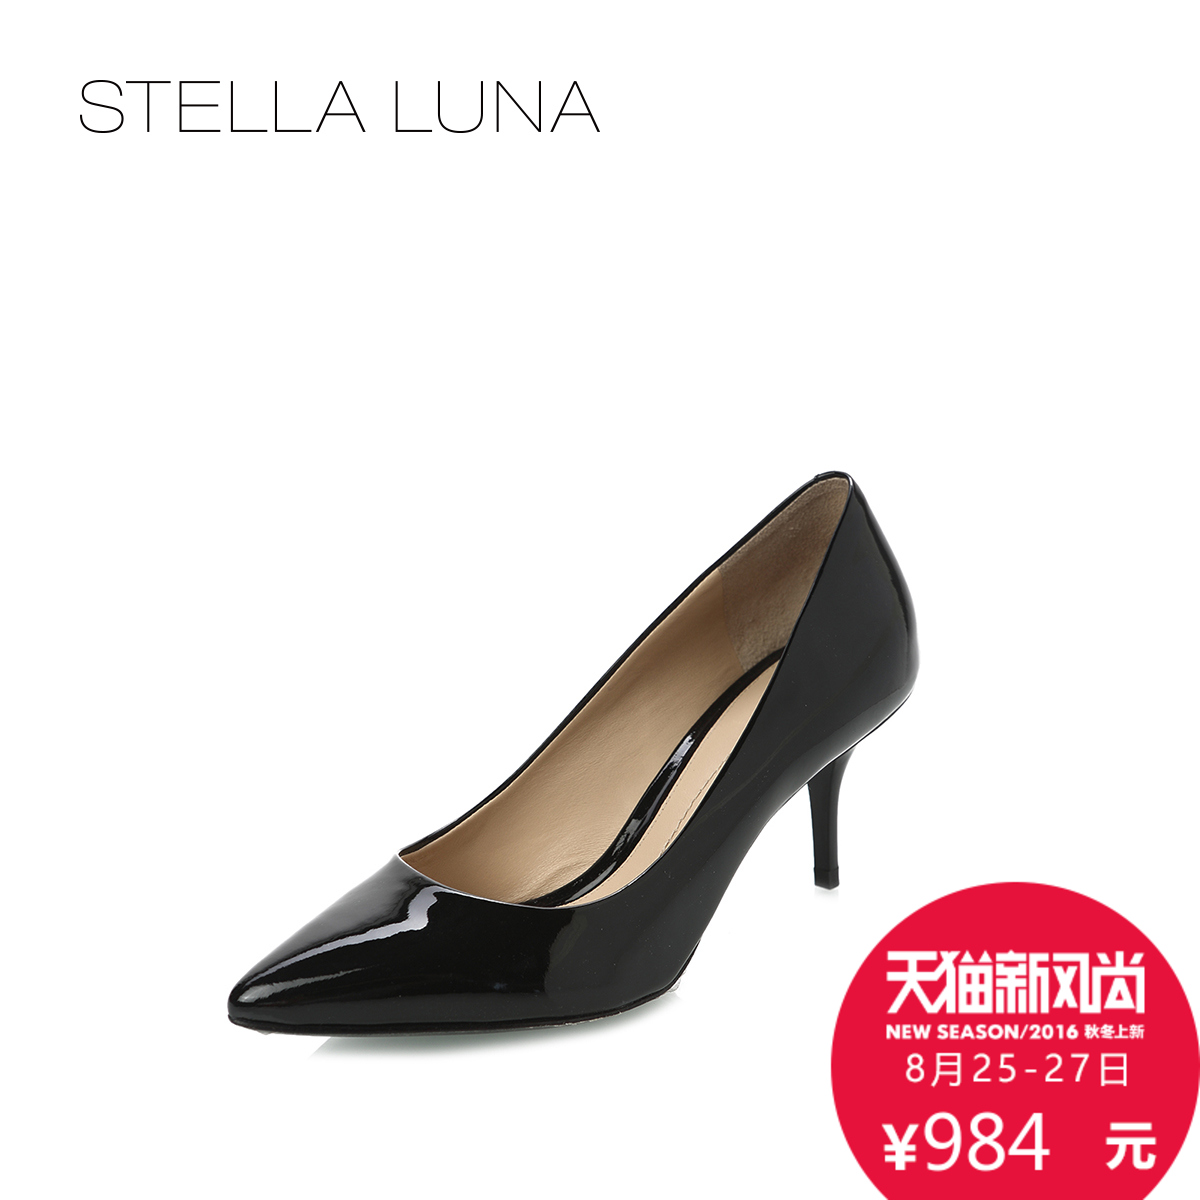 Ms. spring and summer commuter patent leather high heels shallow mouth shoes stella luna SE133L02175